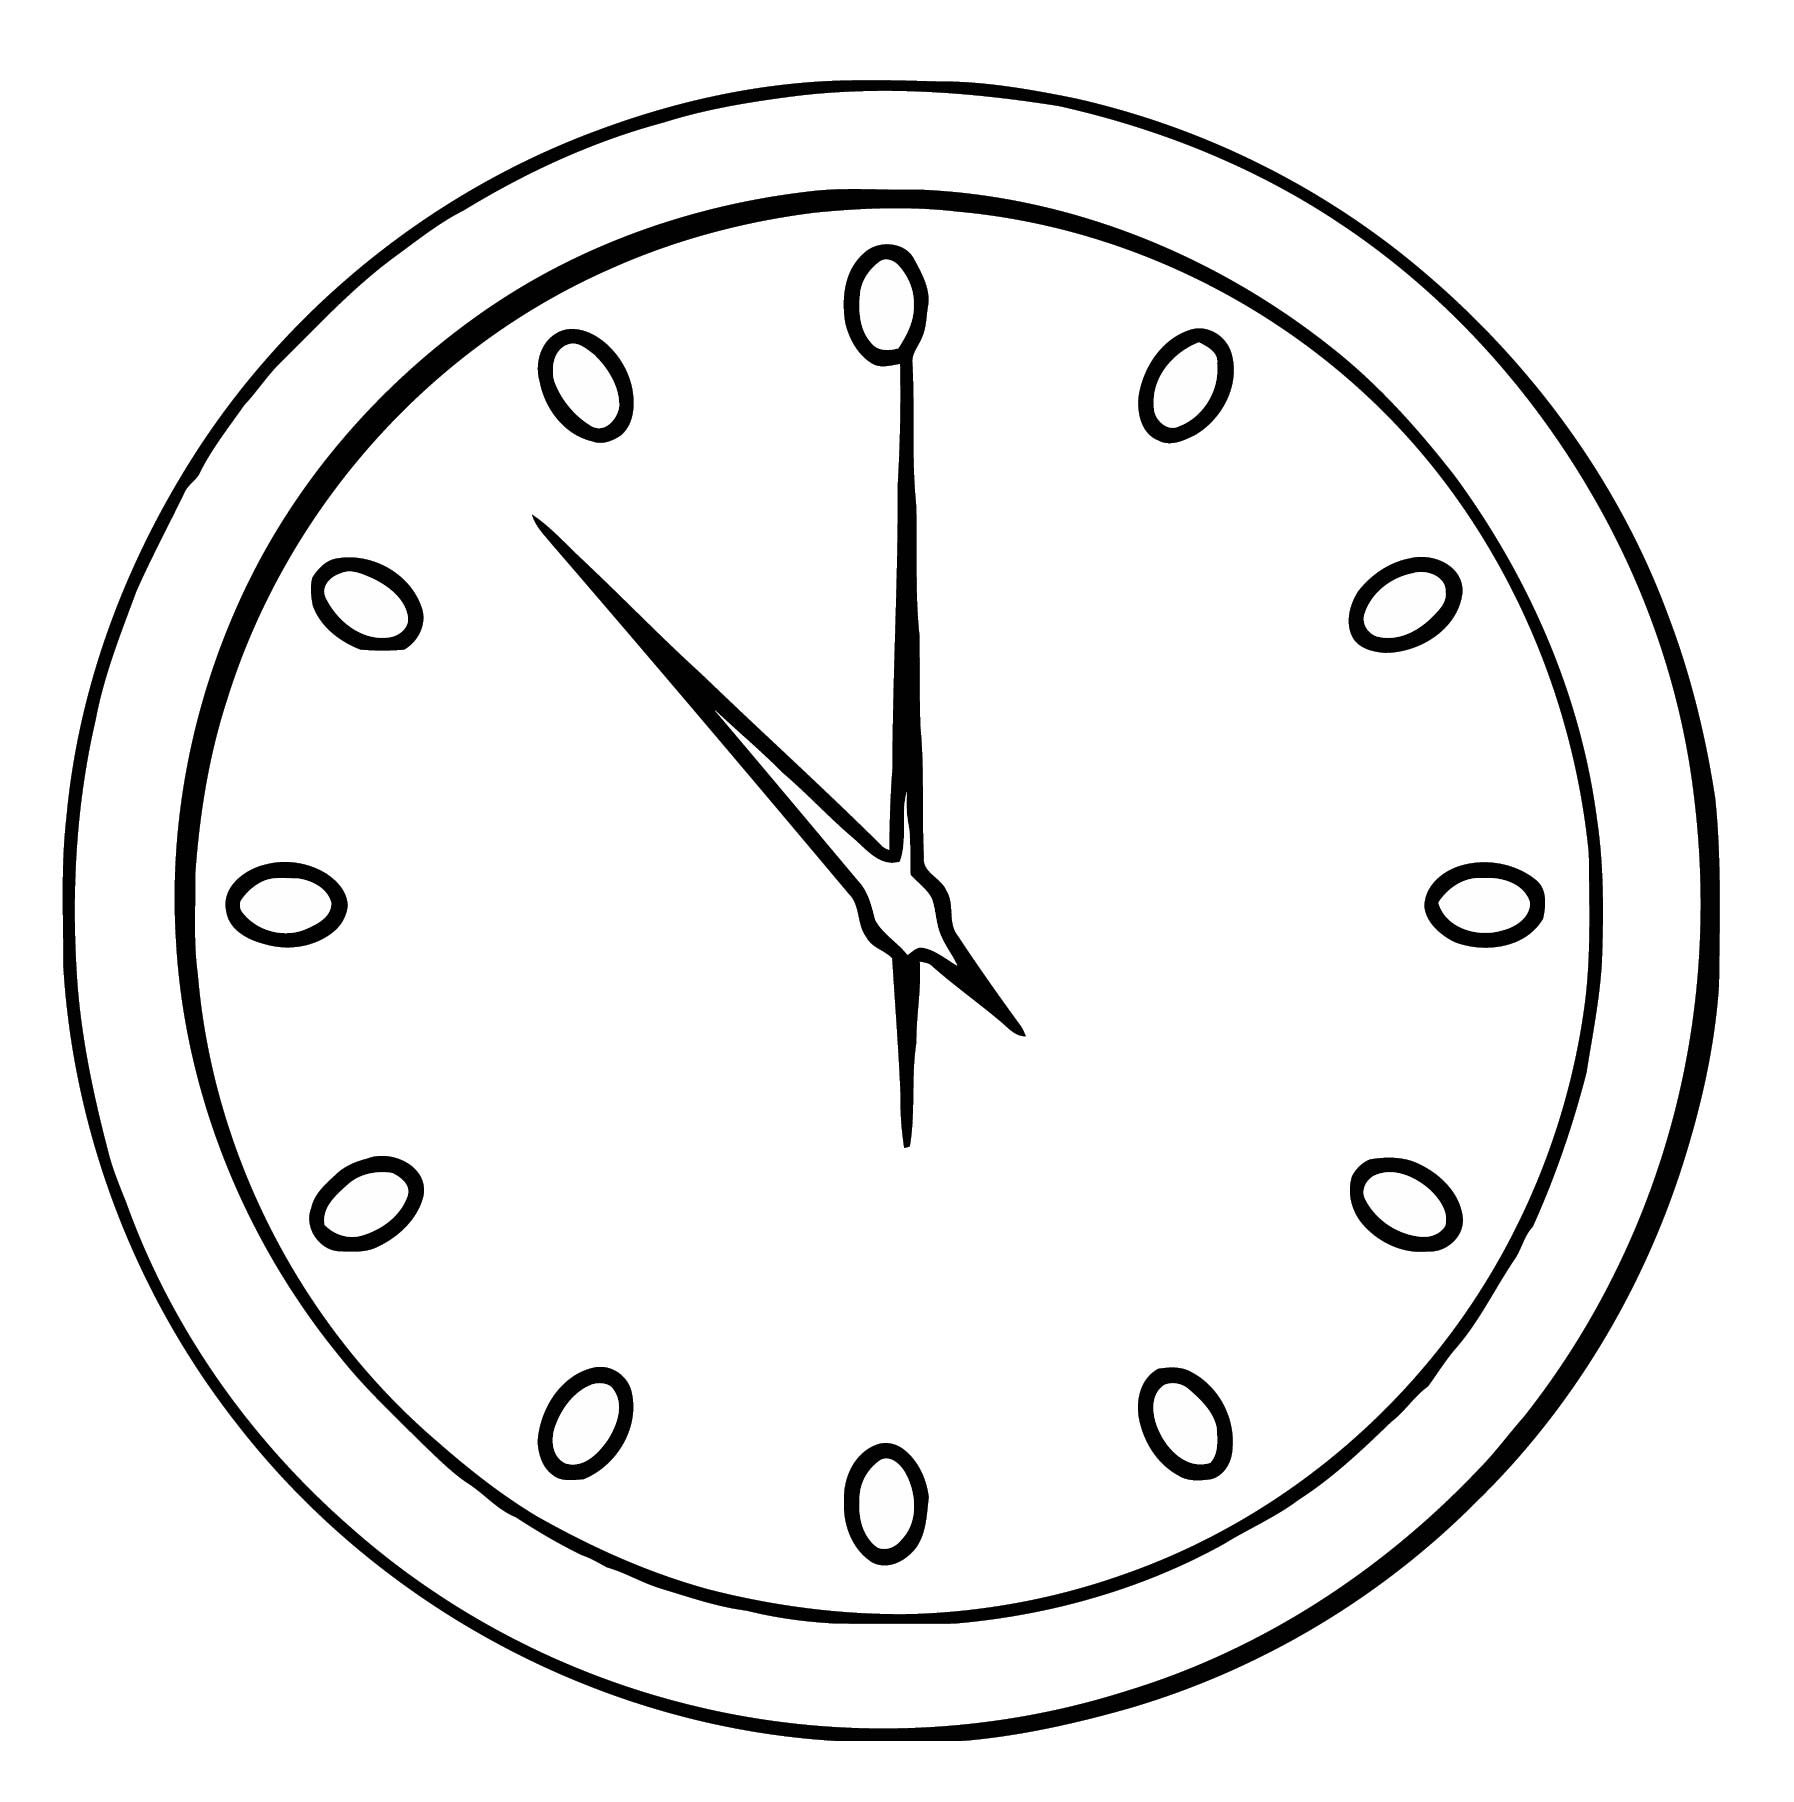 Football Clock Clipart Free Printable 1 Cartoonized Free Printable Coloring Page